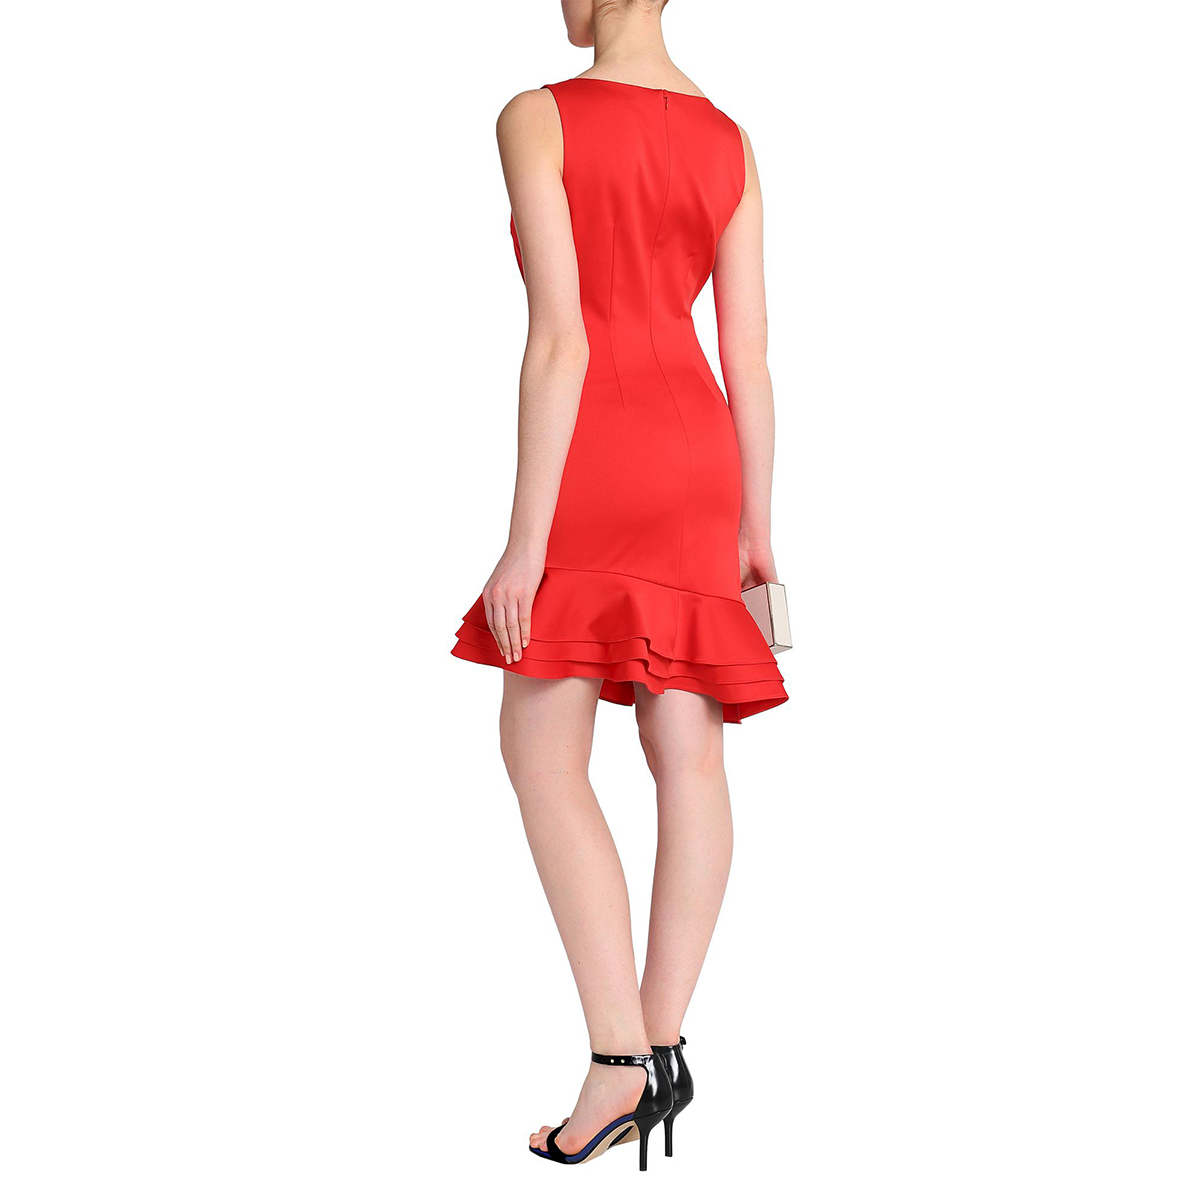 This Stunning Red Badgley Mischka Dress Is Over 50% Off